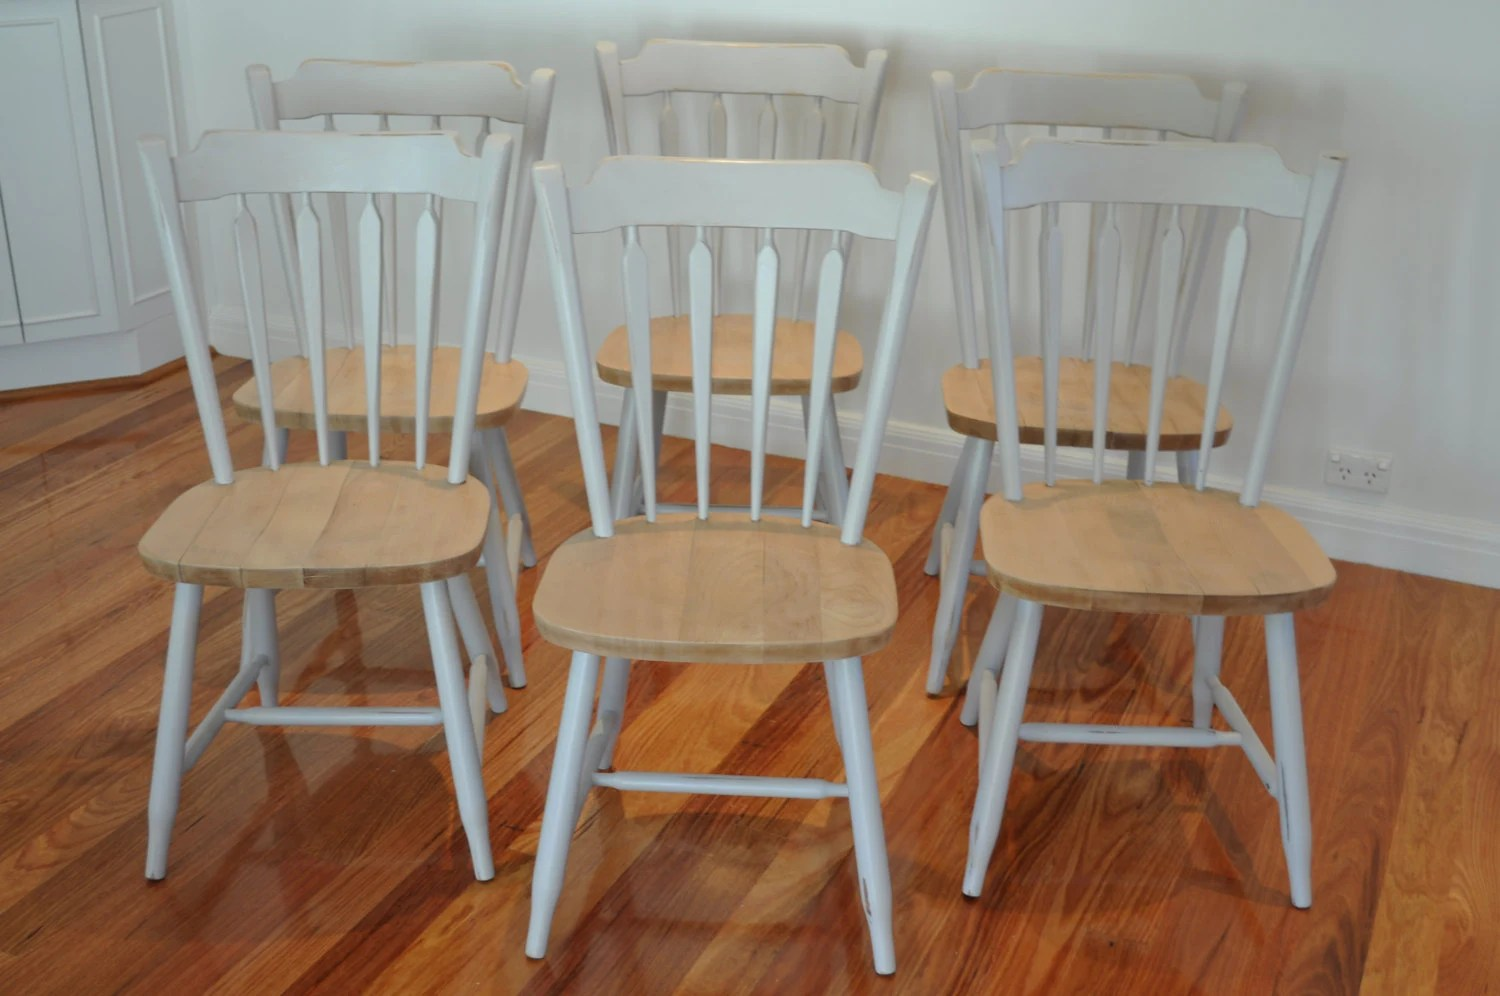 Raw Timber Furniture Chairs 6 No Timber Dining Kitchen Country Charm Grey With